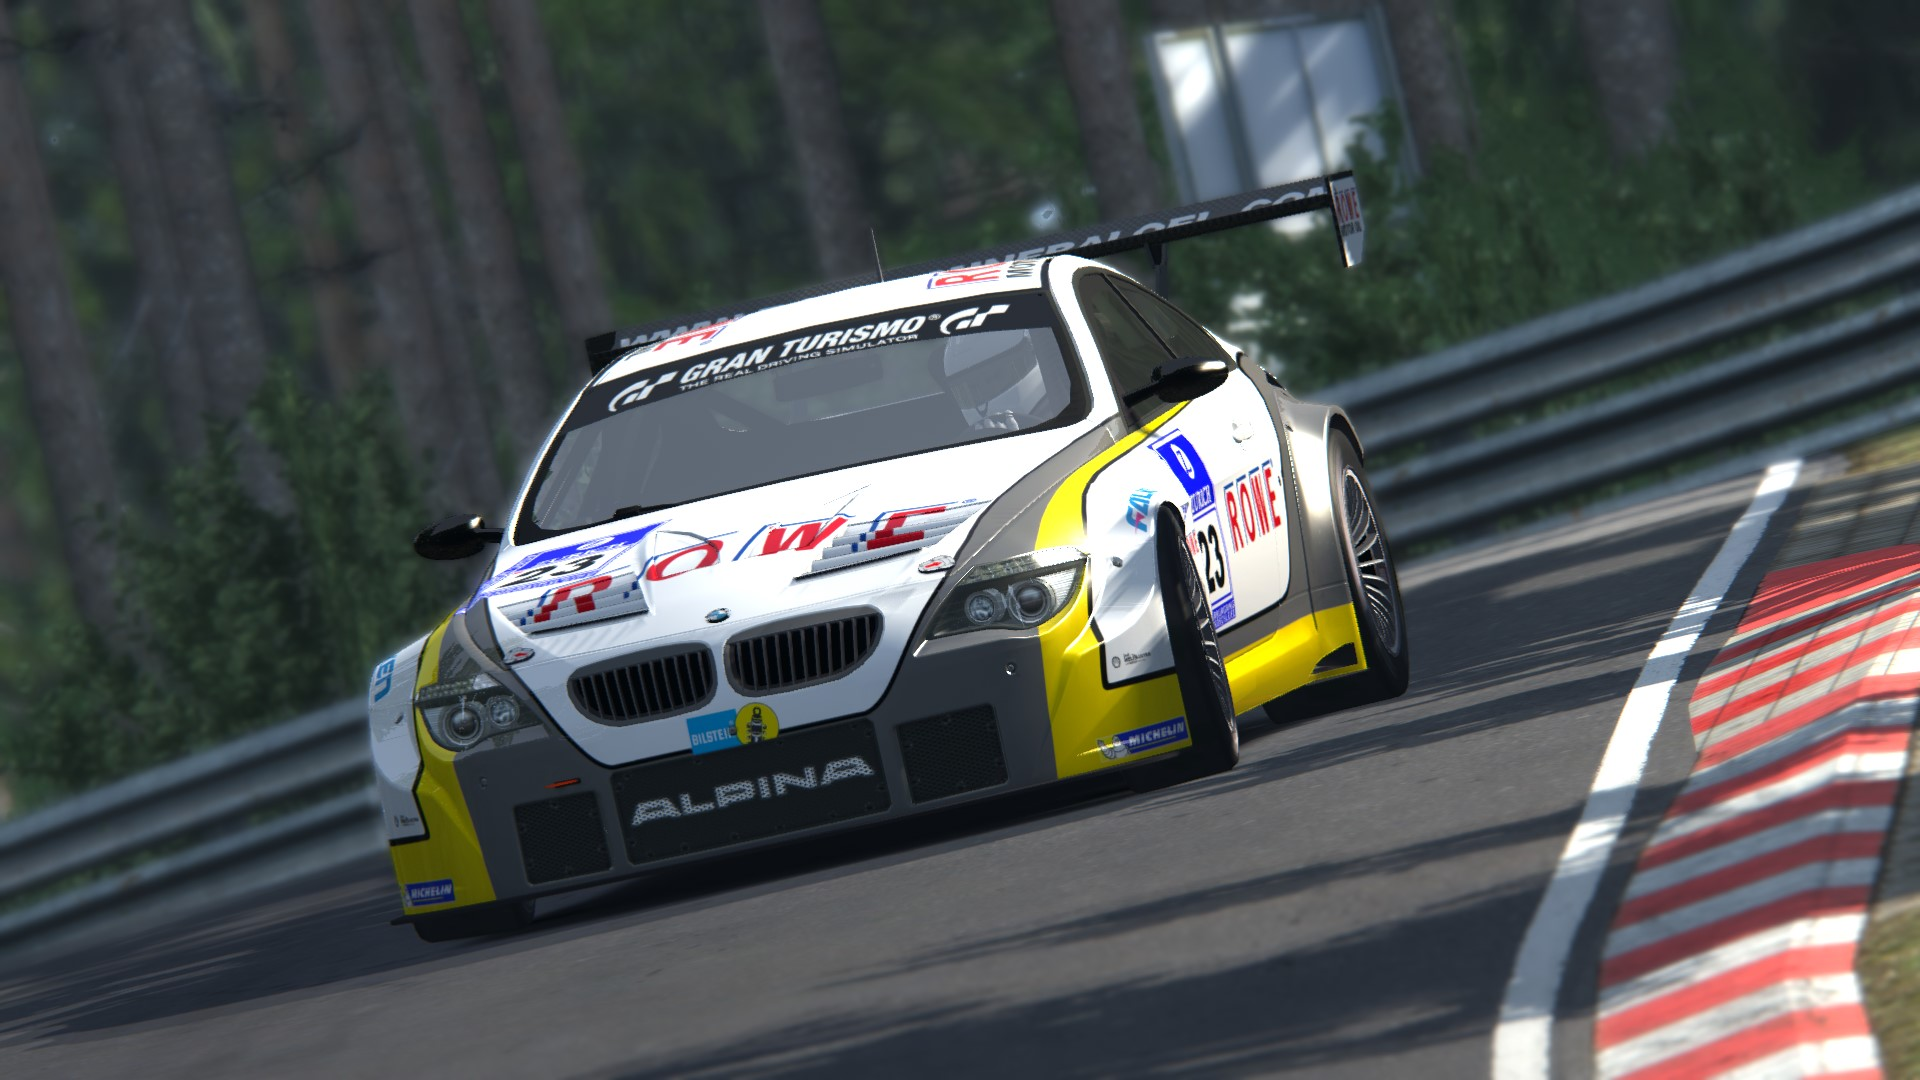 Screenshot_alpinab6_gt3_ks_nordschleife_17-12-115-11-59-17.jpg